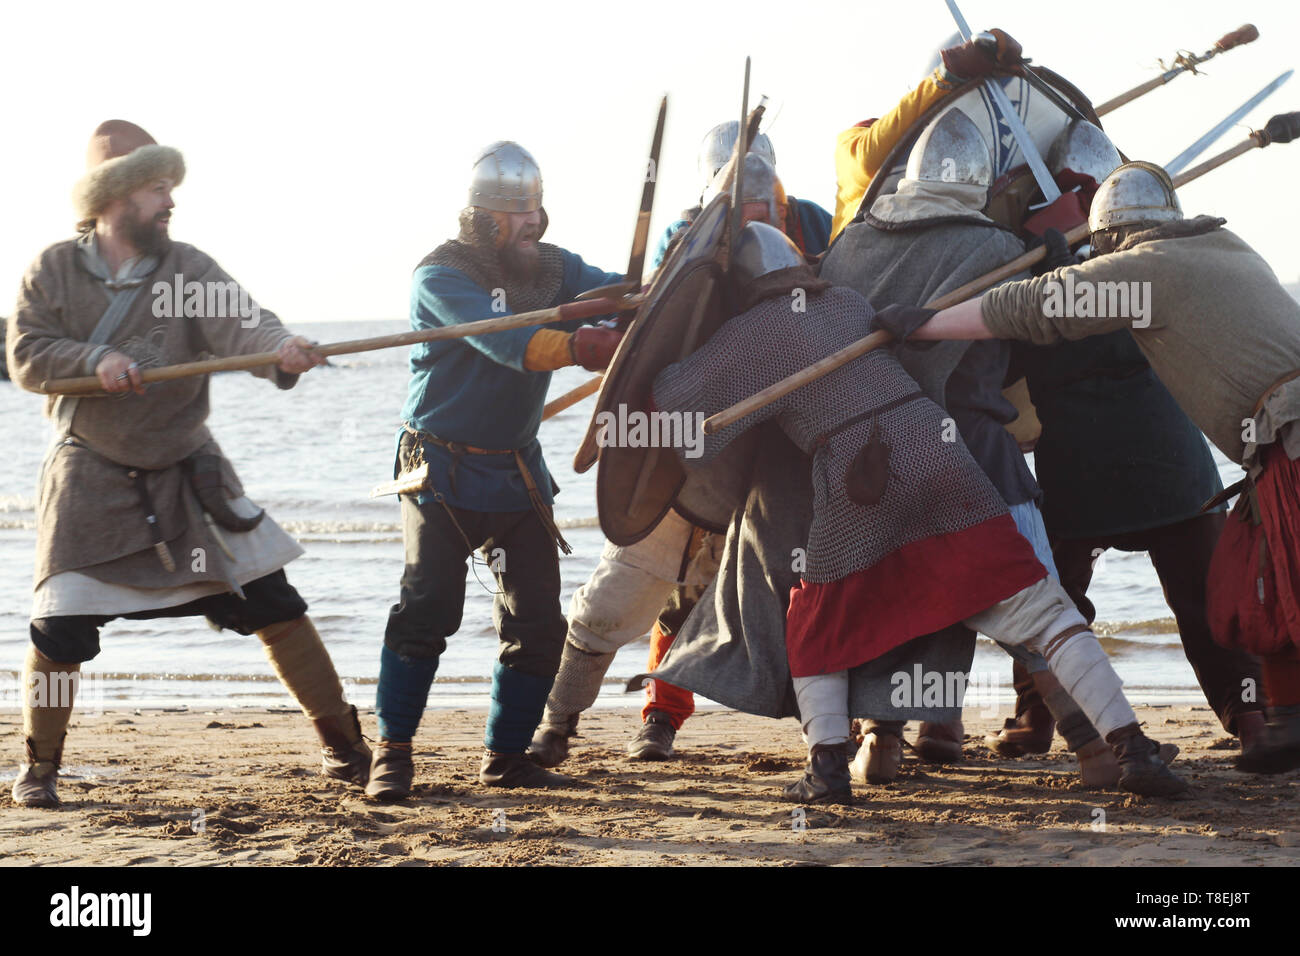 Slavic warriors reenactors with wearpons and shields training fighting outdoors at seaside - Stock Image